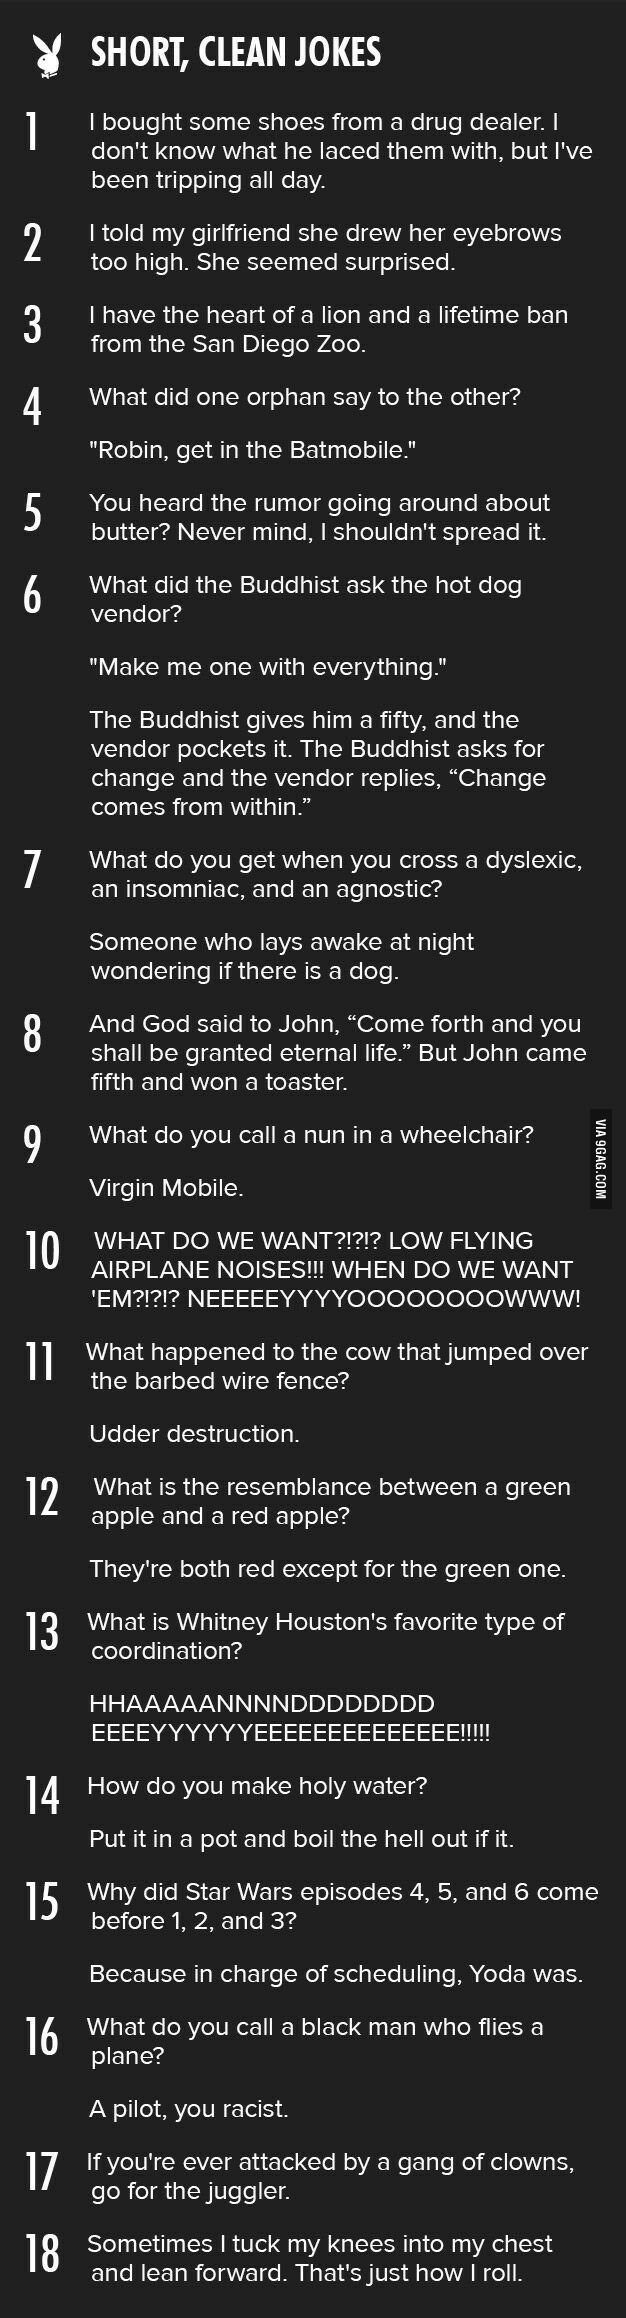 These are gold. - 9GAG